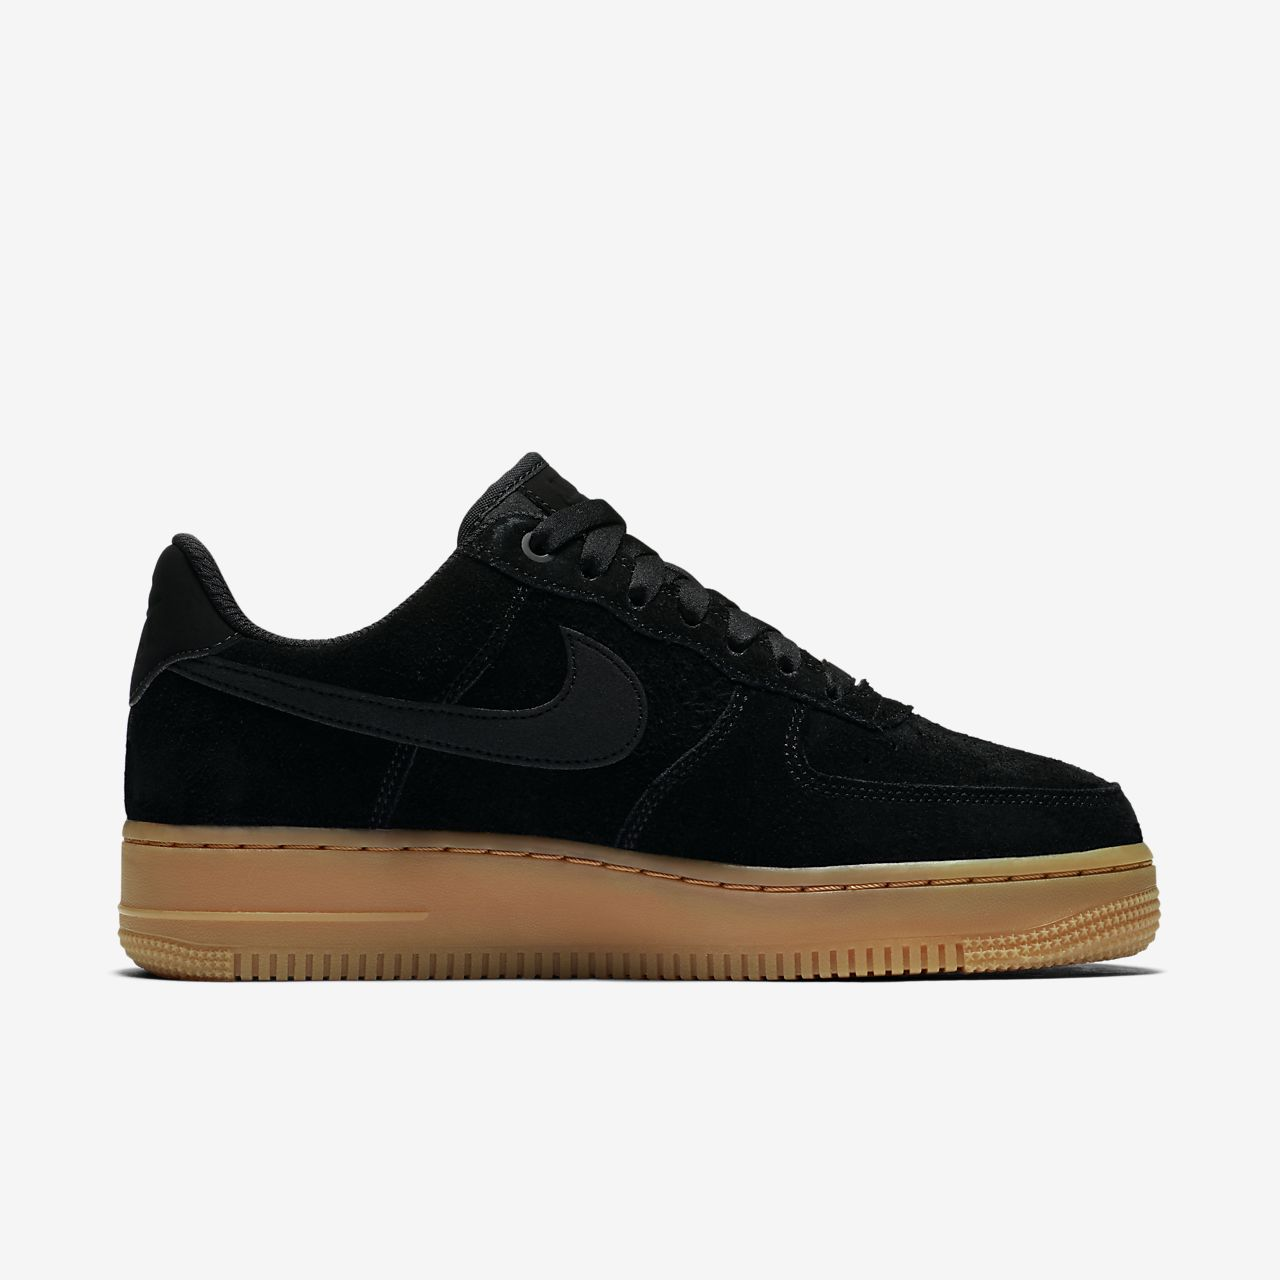 premium selection 5730e 8ea78 ... Nike Air Force 1 07 SE Suede Womens Shoe